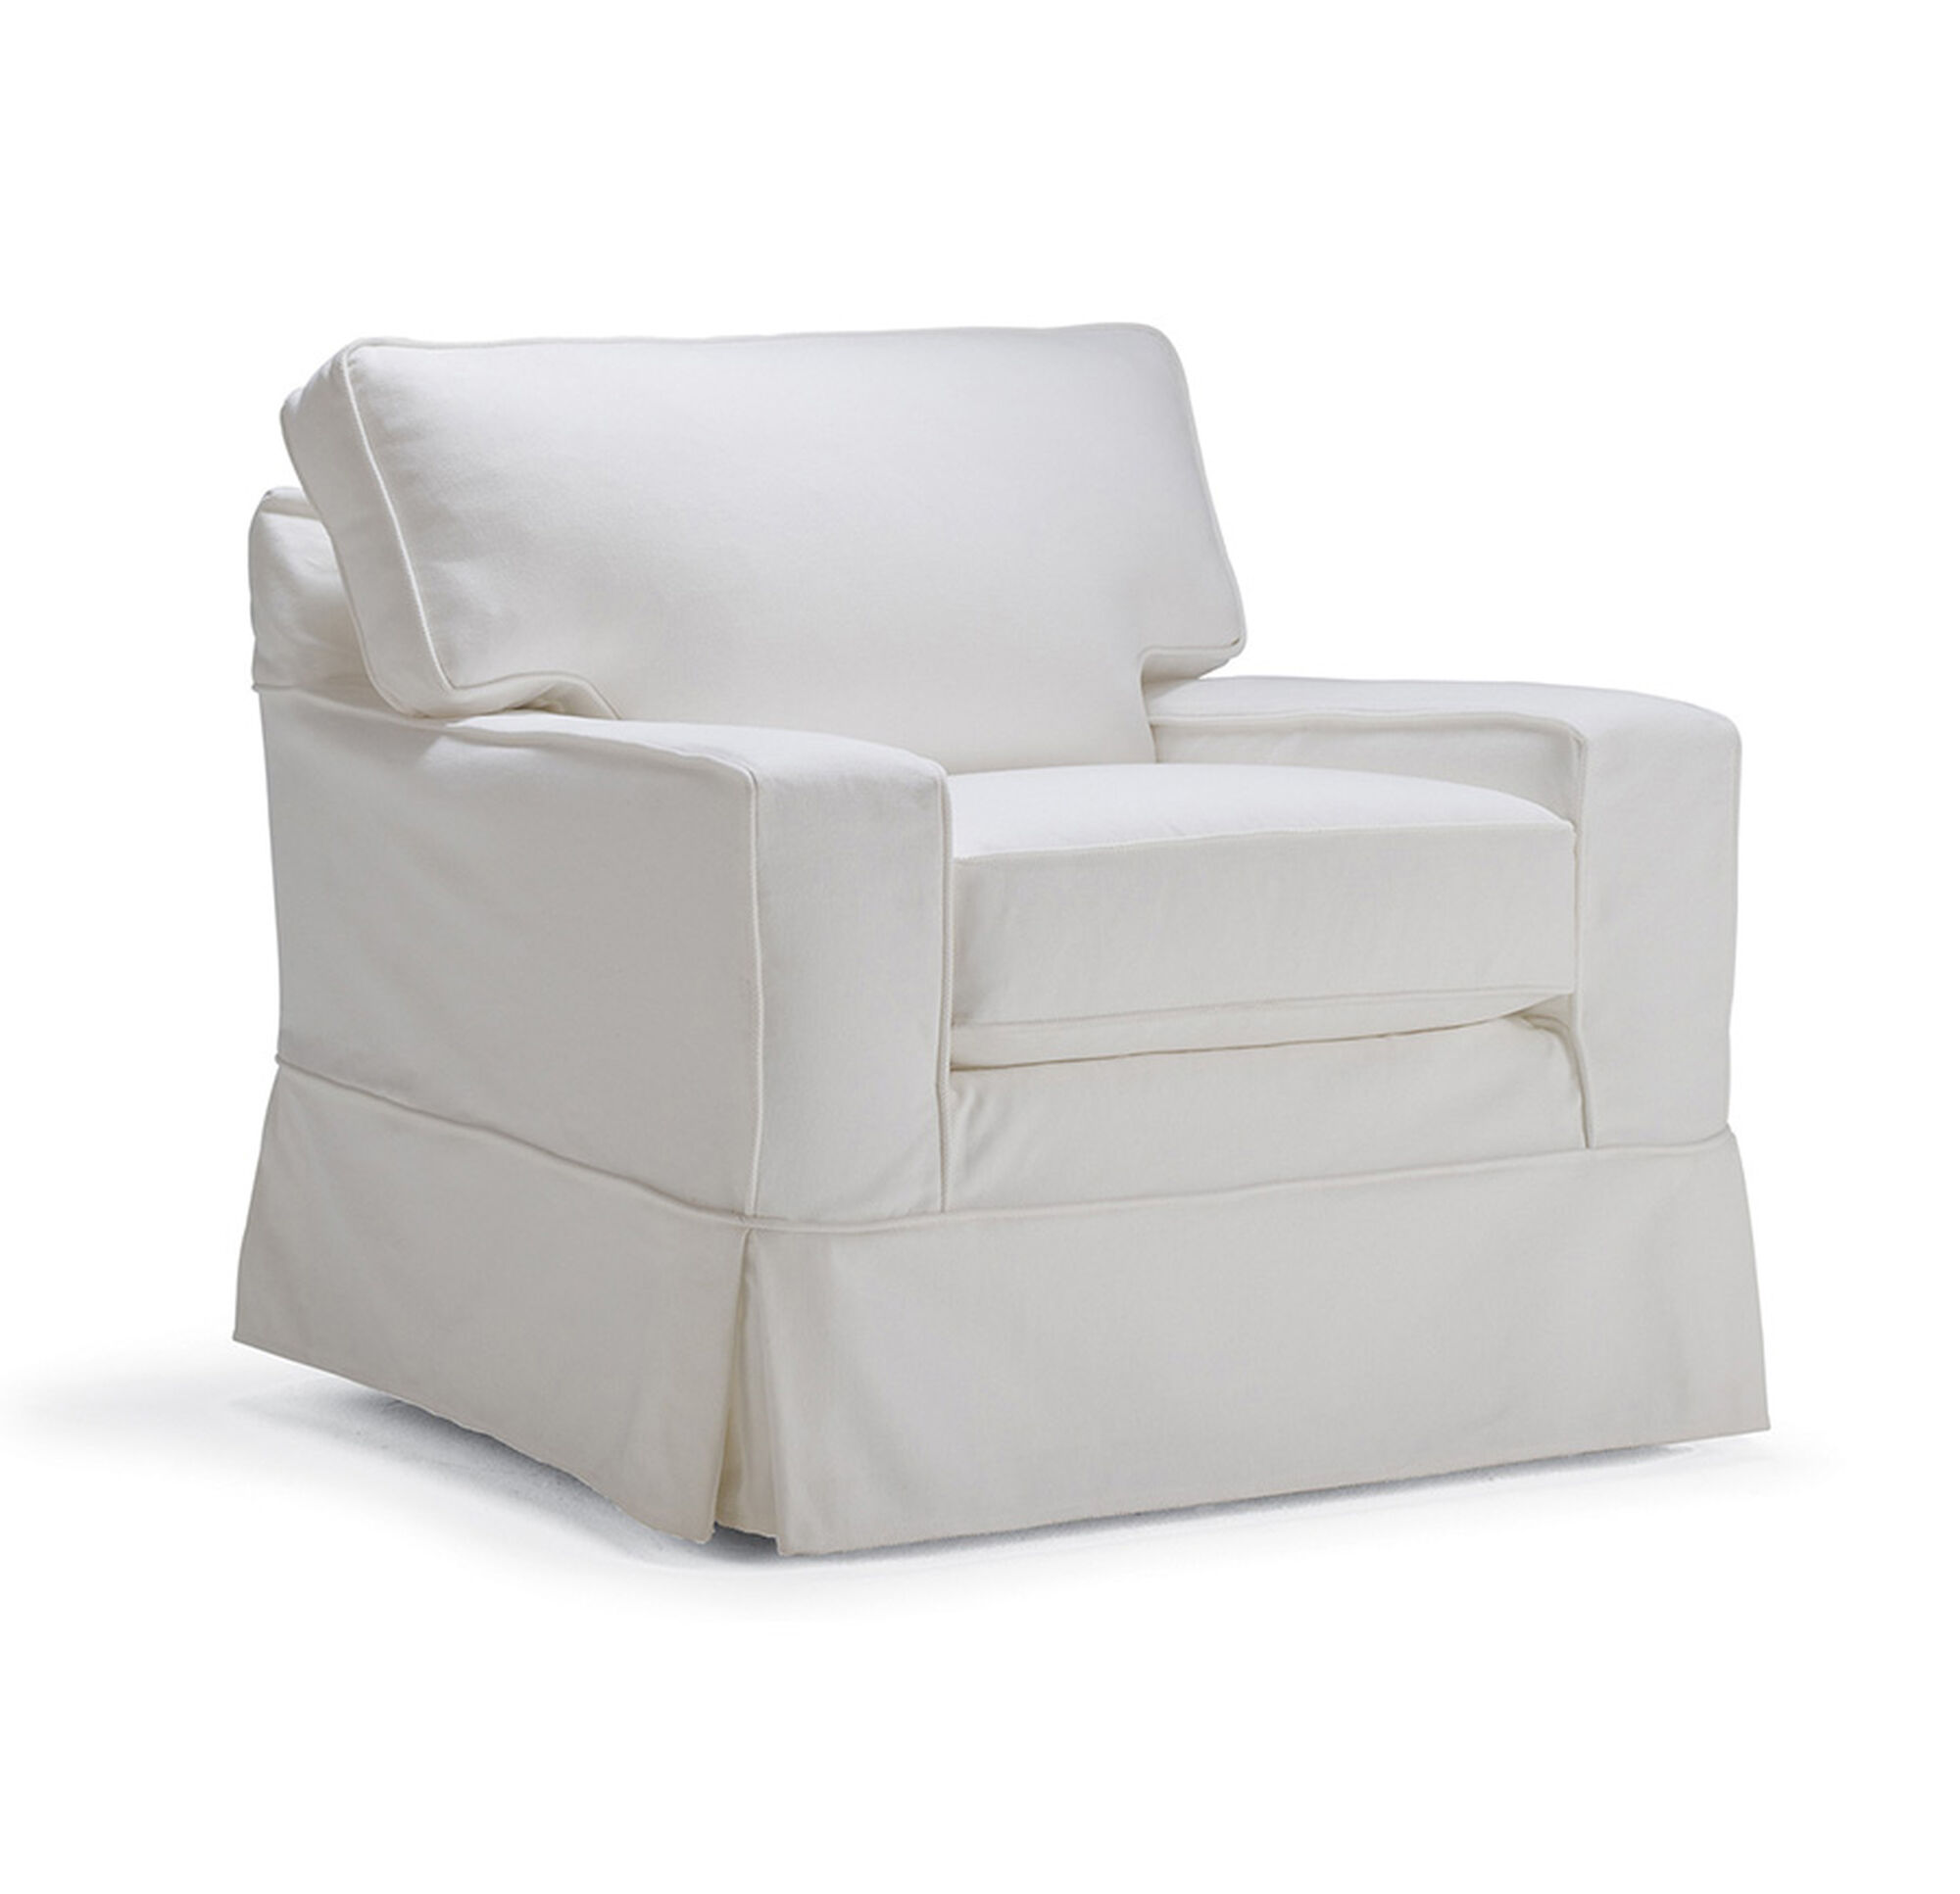 room convertible slipcovers ideas armchair armchairs bed boy ikea size full beds for lazy sleeper fold chair